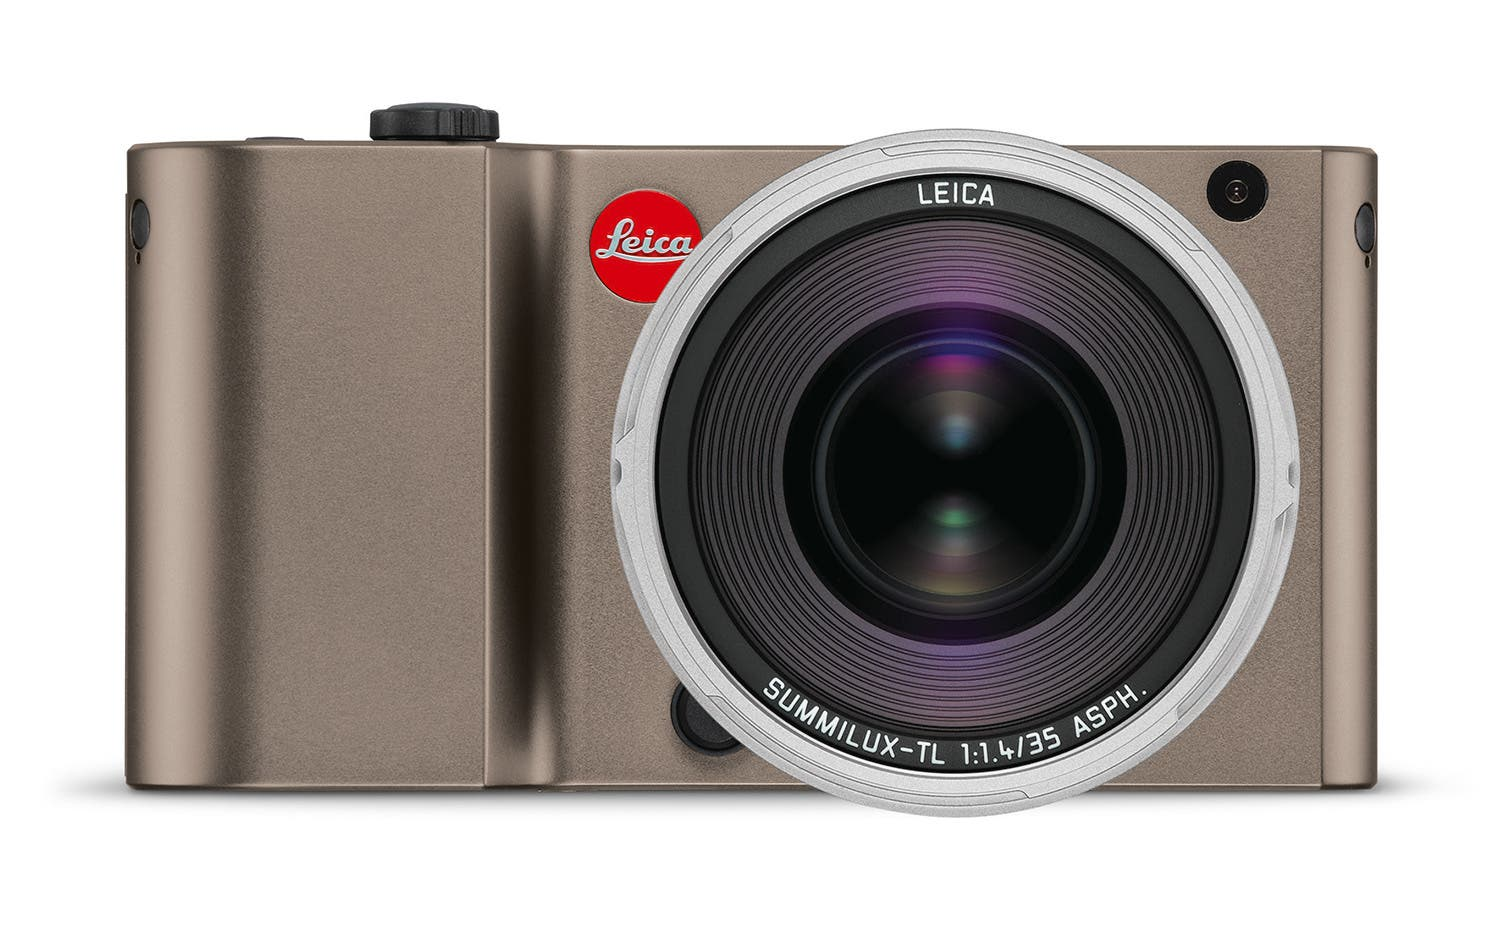 Leica Unveils New TL Camera With Faster AF and More Storage